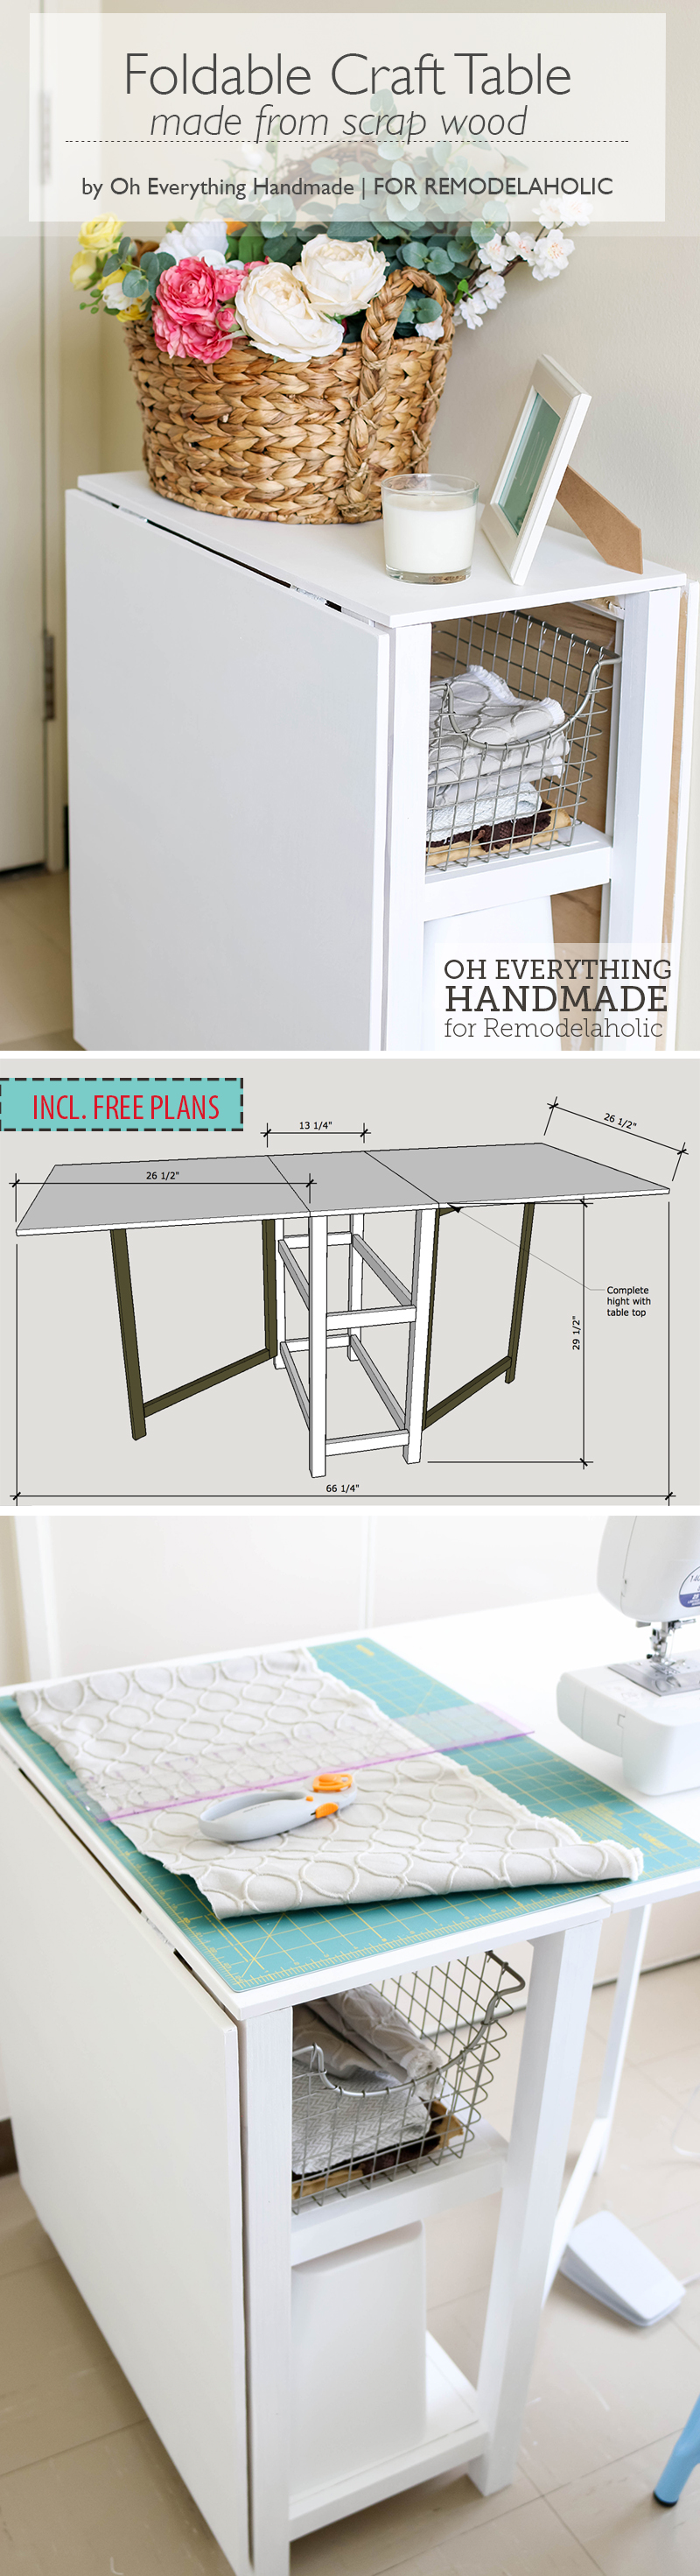 Make your small craft area work with this space-conscious DIY foldable craft table, built from inexpensive materials or even scraps. Two fold-out gate-leg dropleaf sections create a small or large workspace, with storage in the base for a sewing machine or supplies.